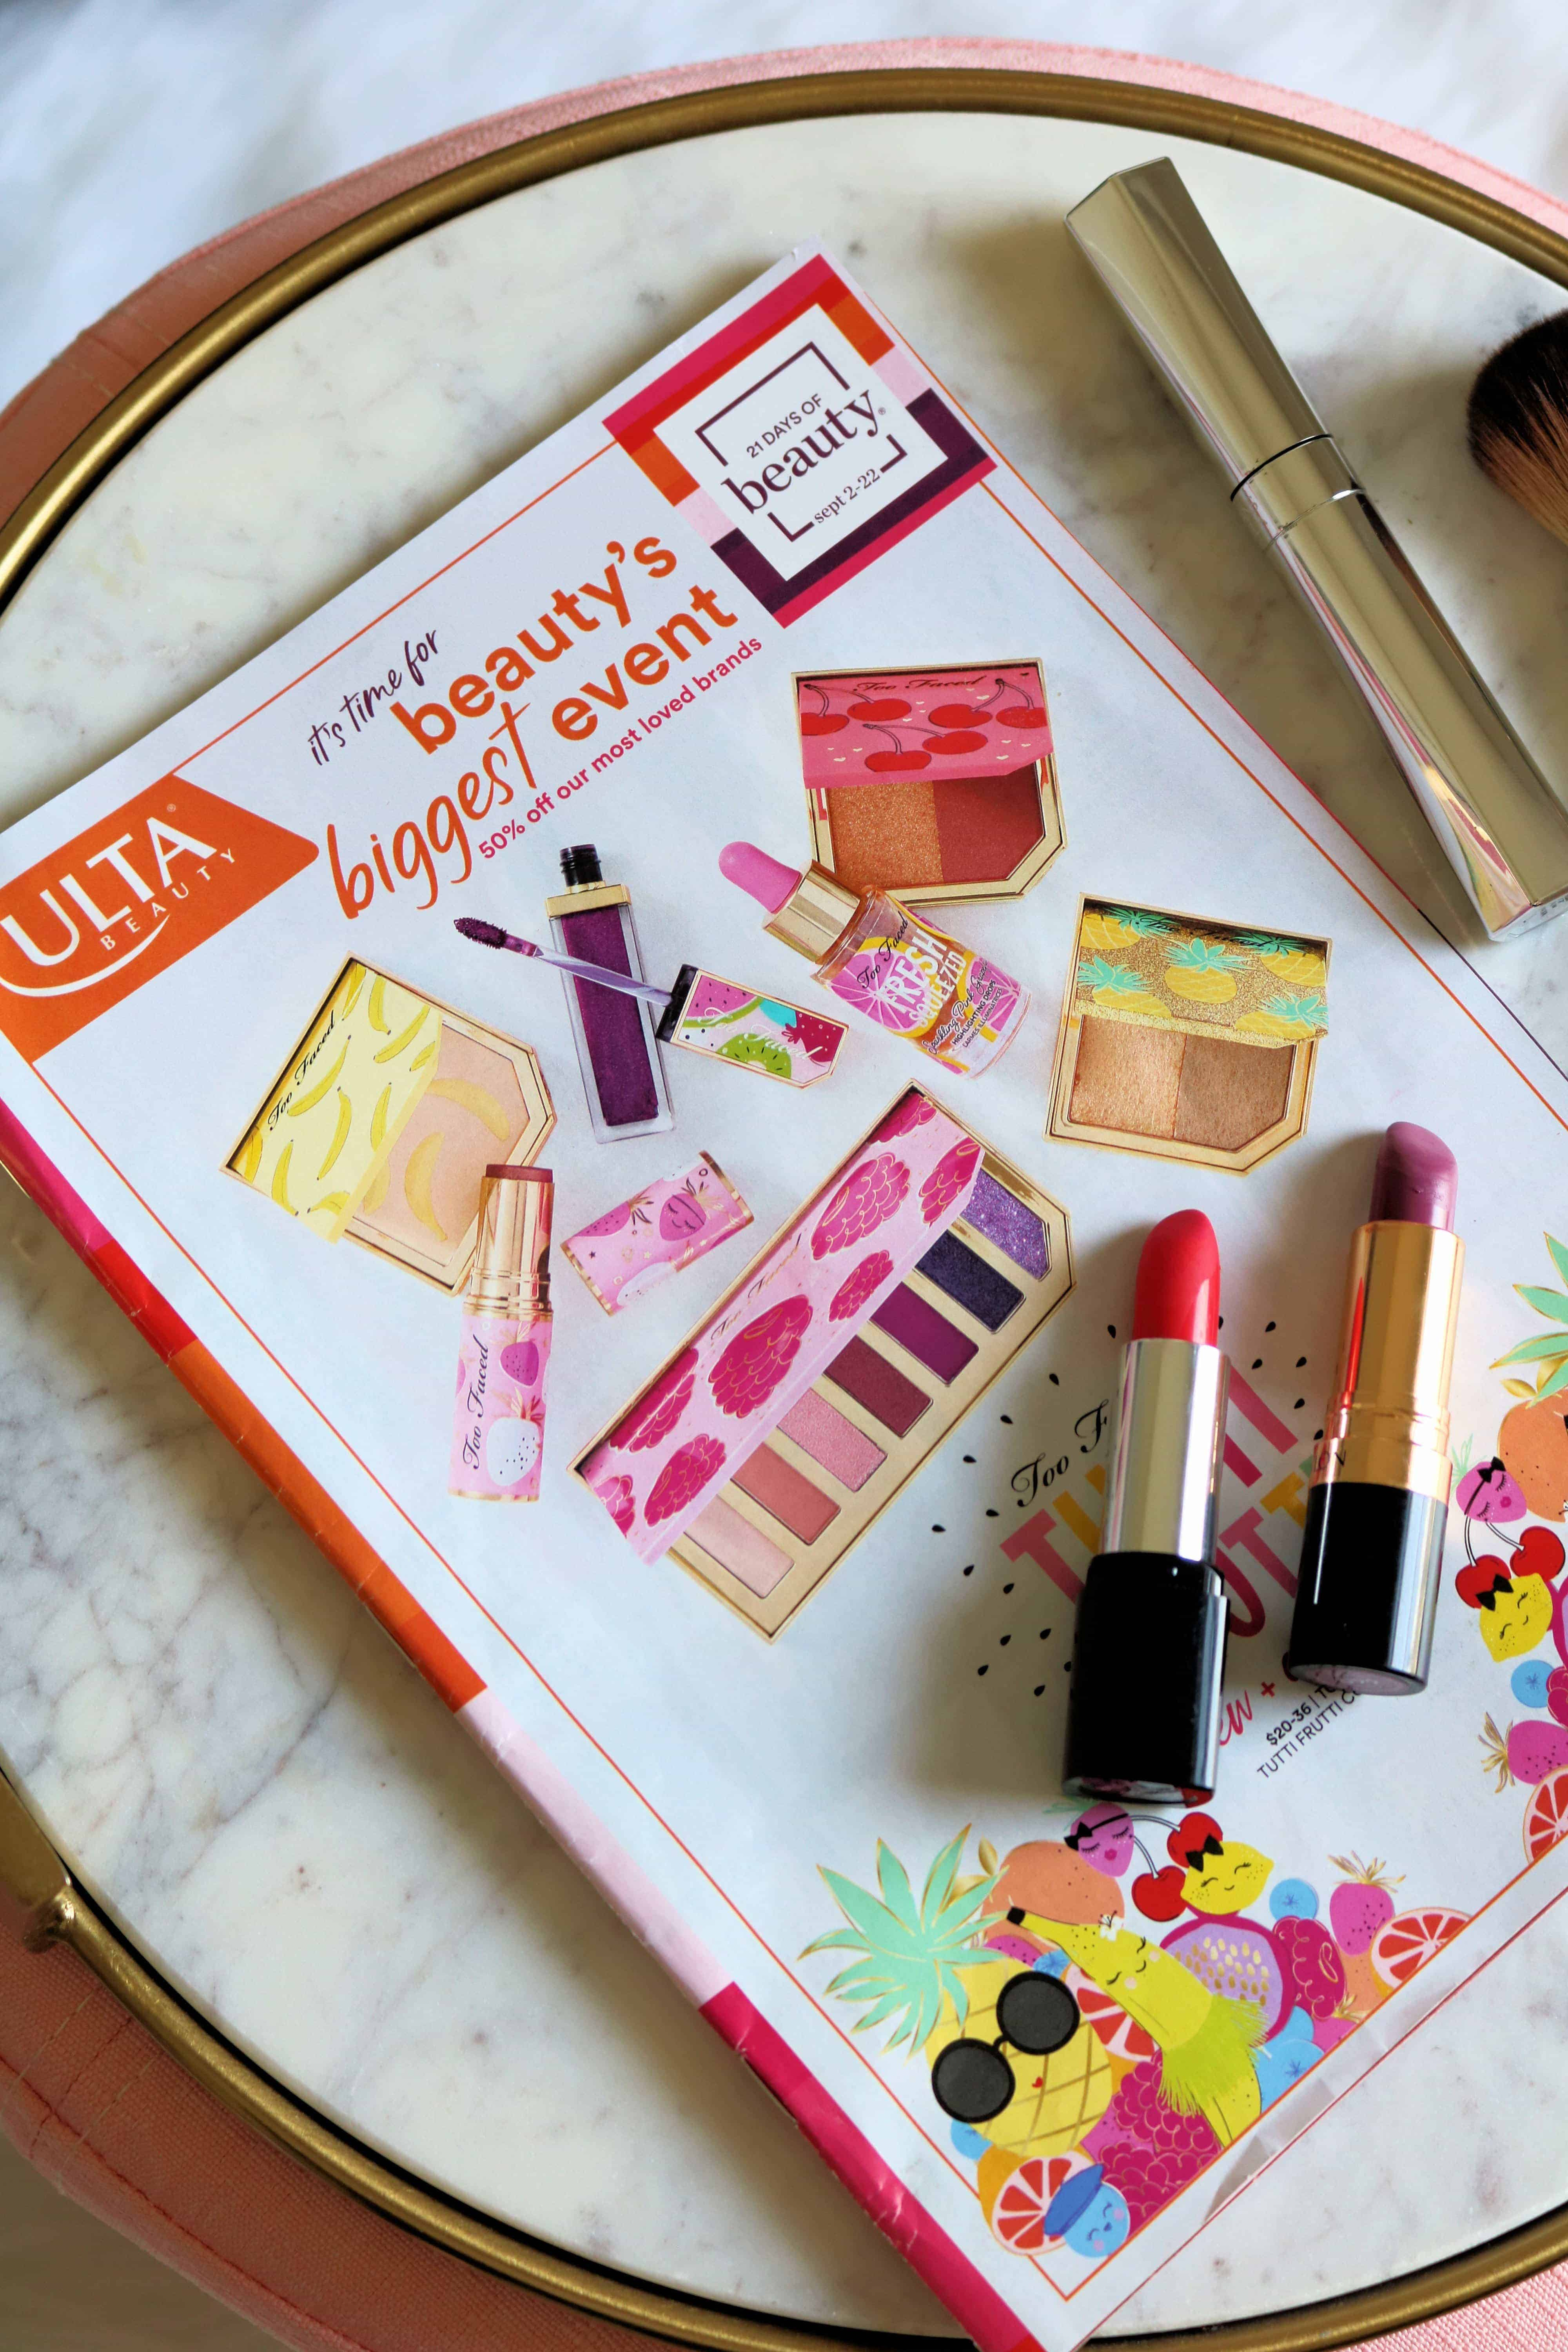 Ready to score the best deals on must-have makeup and beauty products? Then check out this helpful Fall 2018 shopping guide where I'm sharing THE BEST Ulta 21 Days of Beauty Deals and what to buy!  #ultabeauty #21daysofbeauty #beautydeals